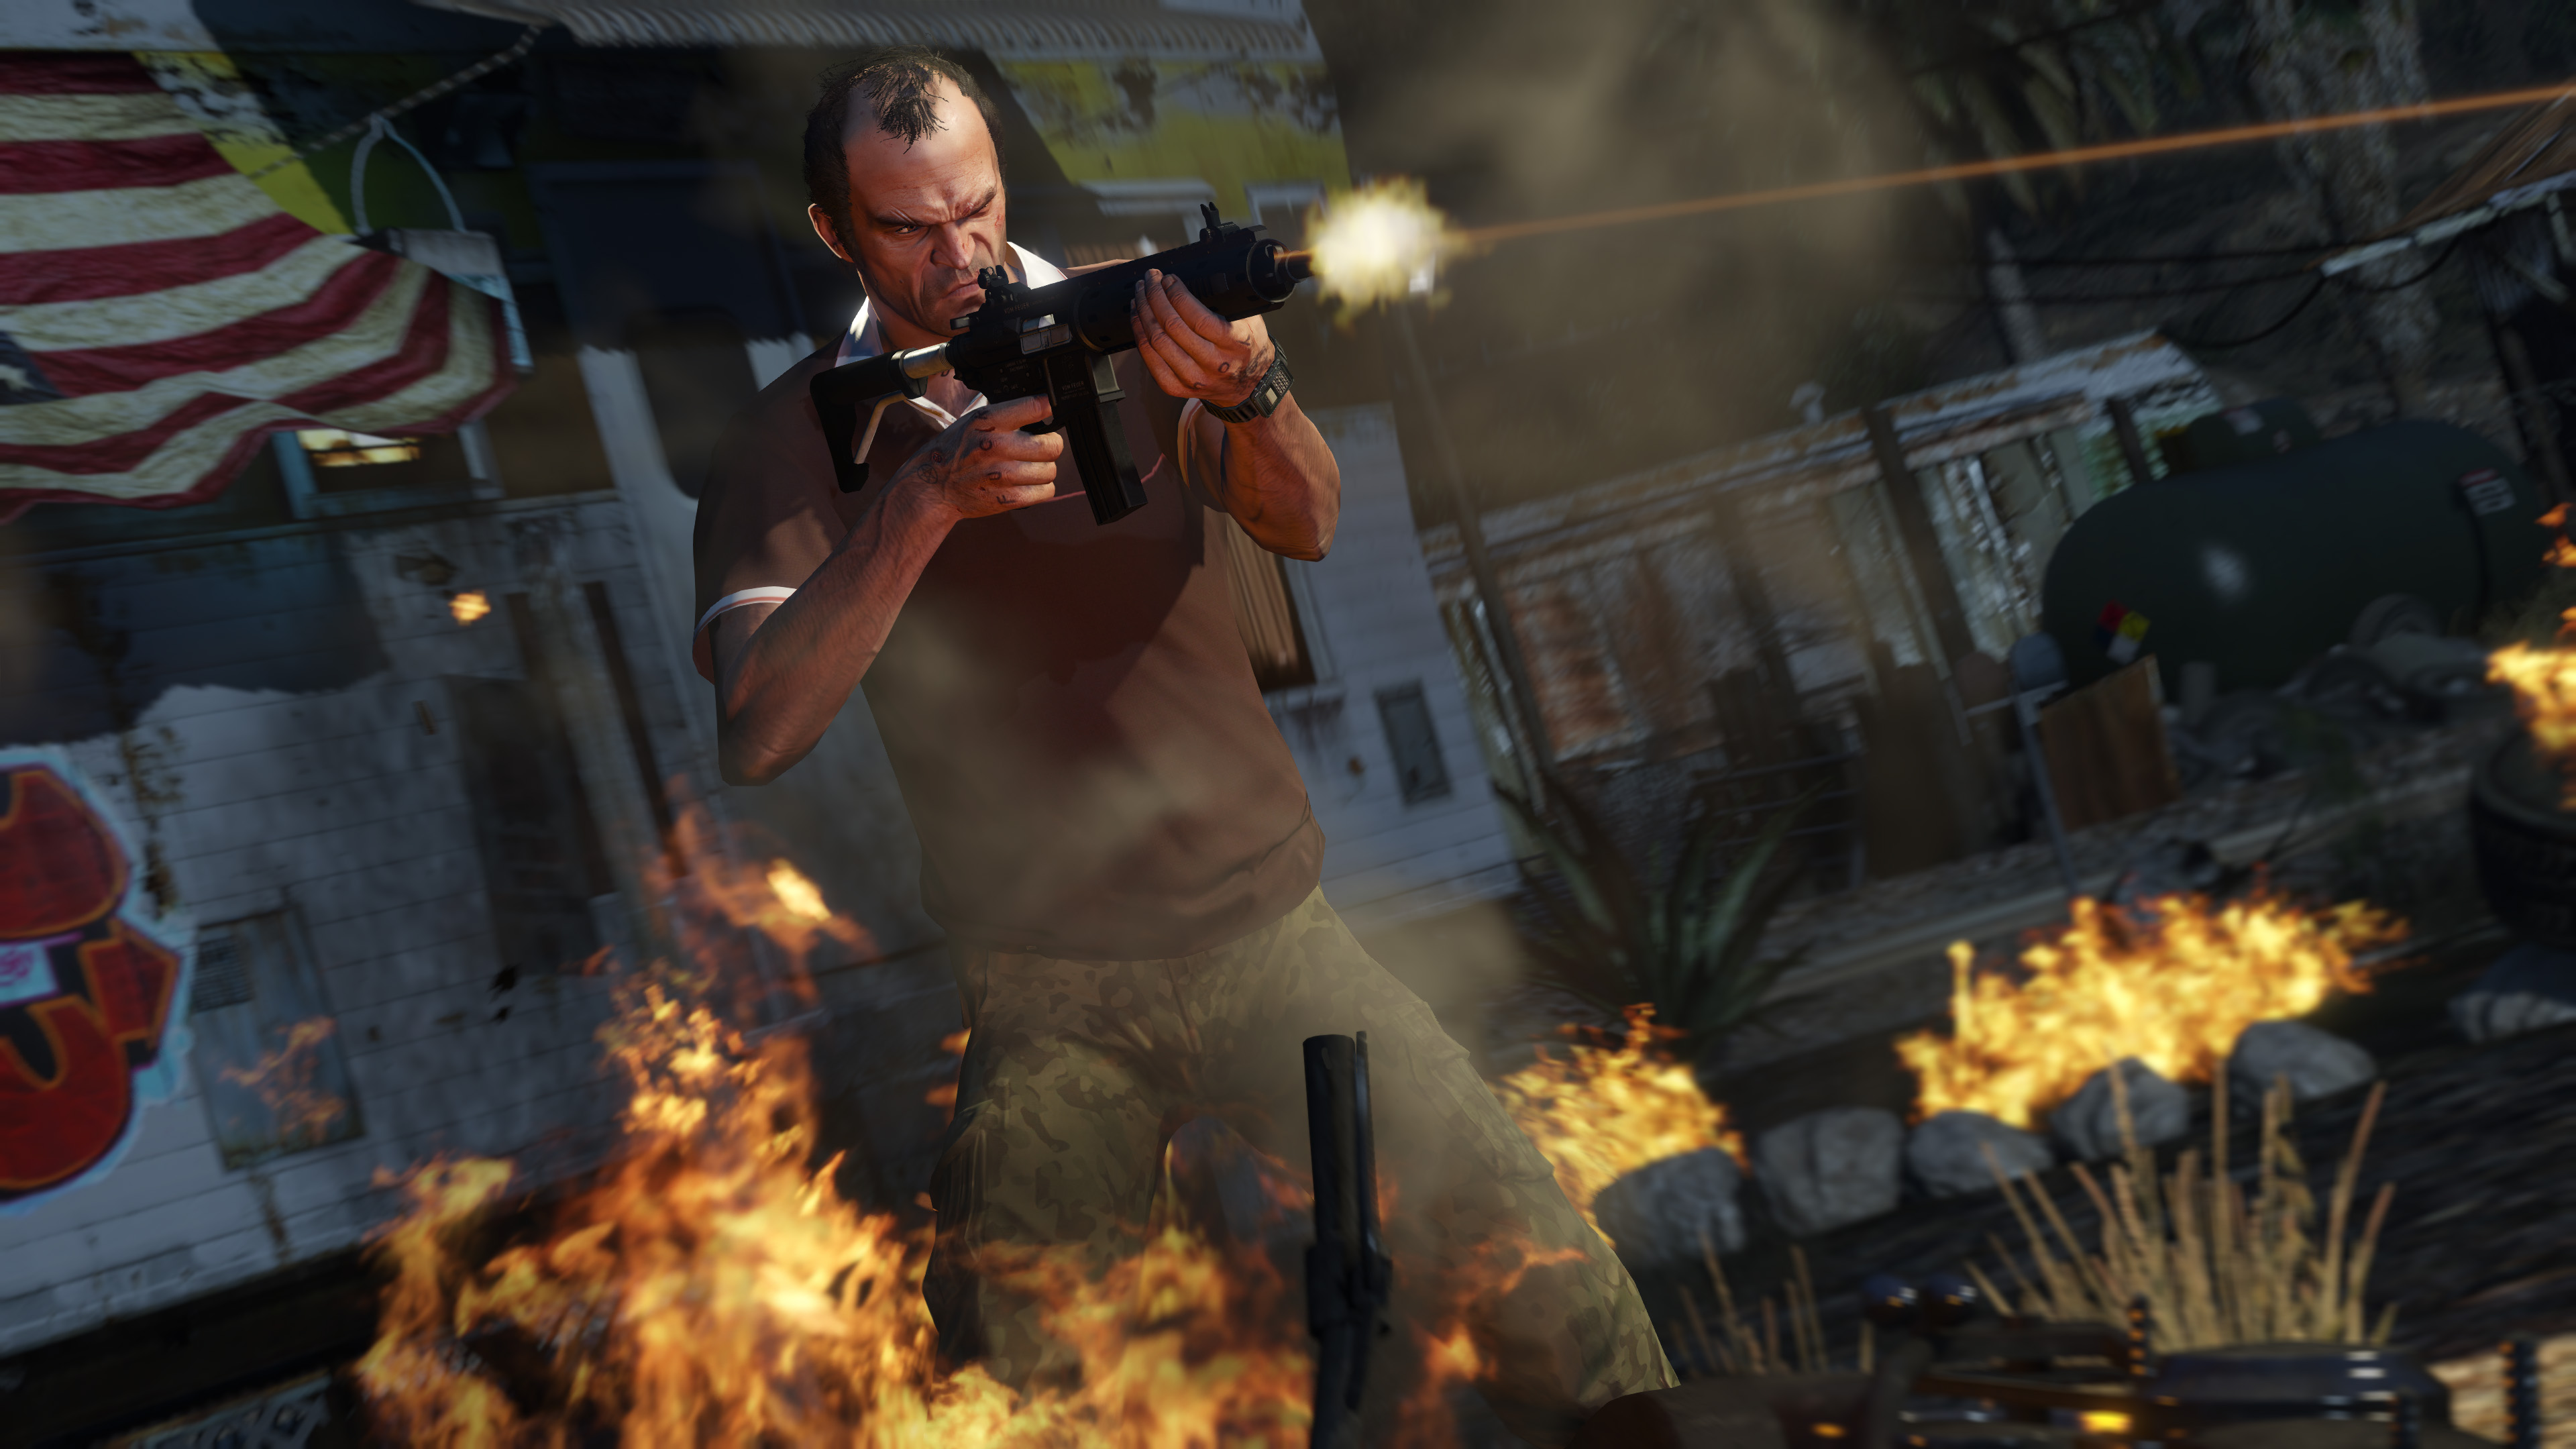 GTA 5 trainer allows for unlimited health and ammo | PC Gamer